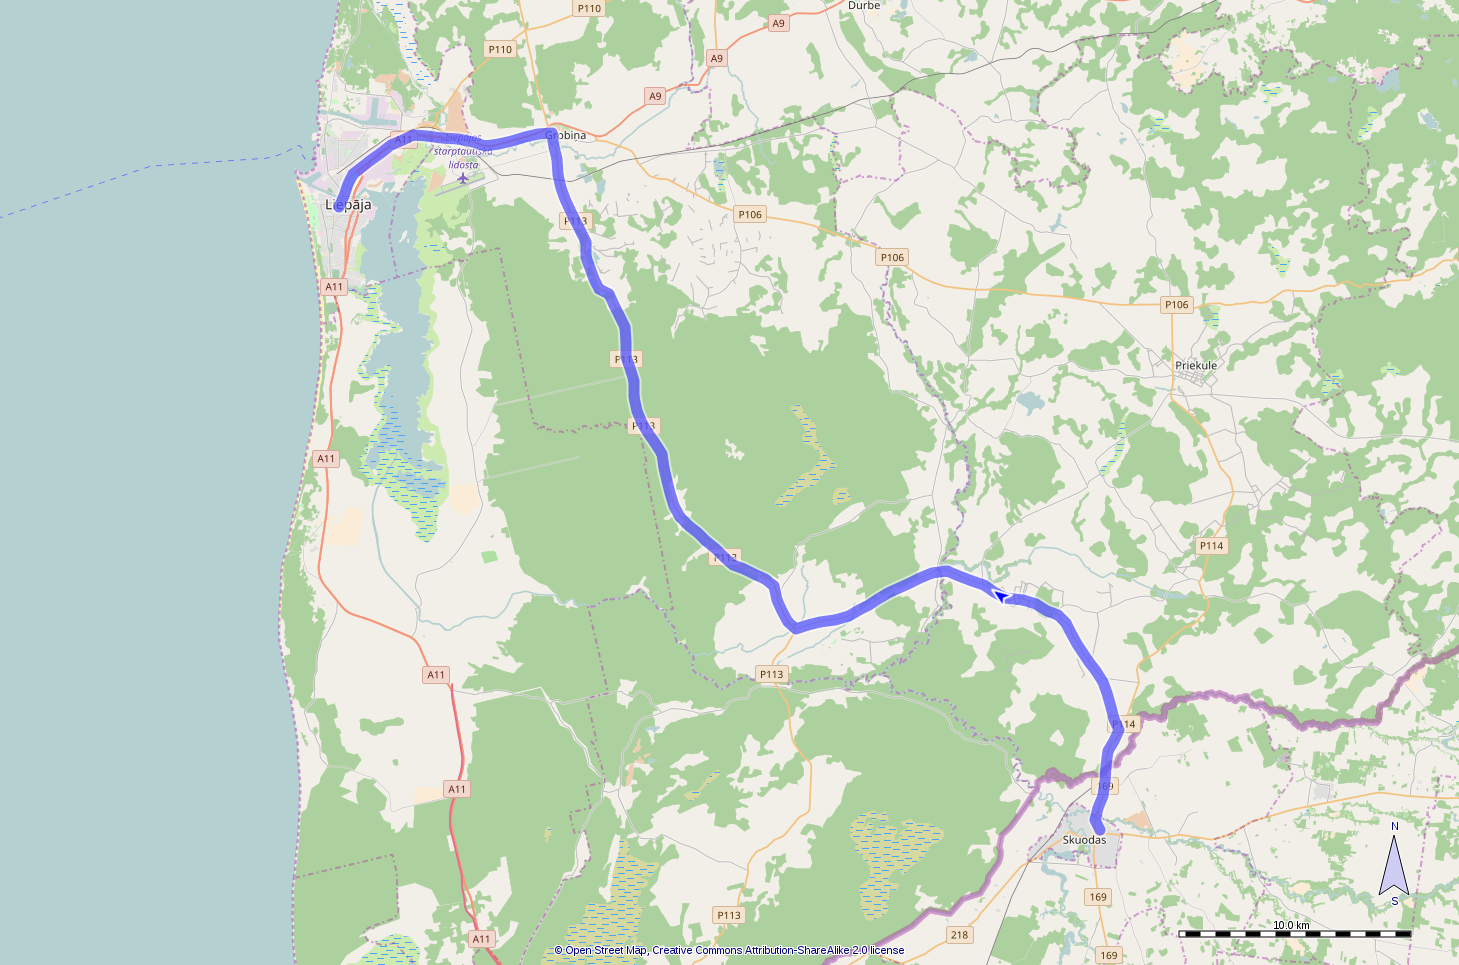 Route day 19